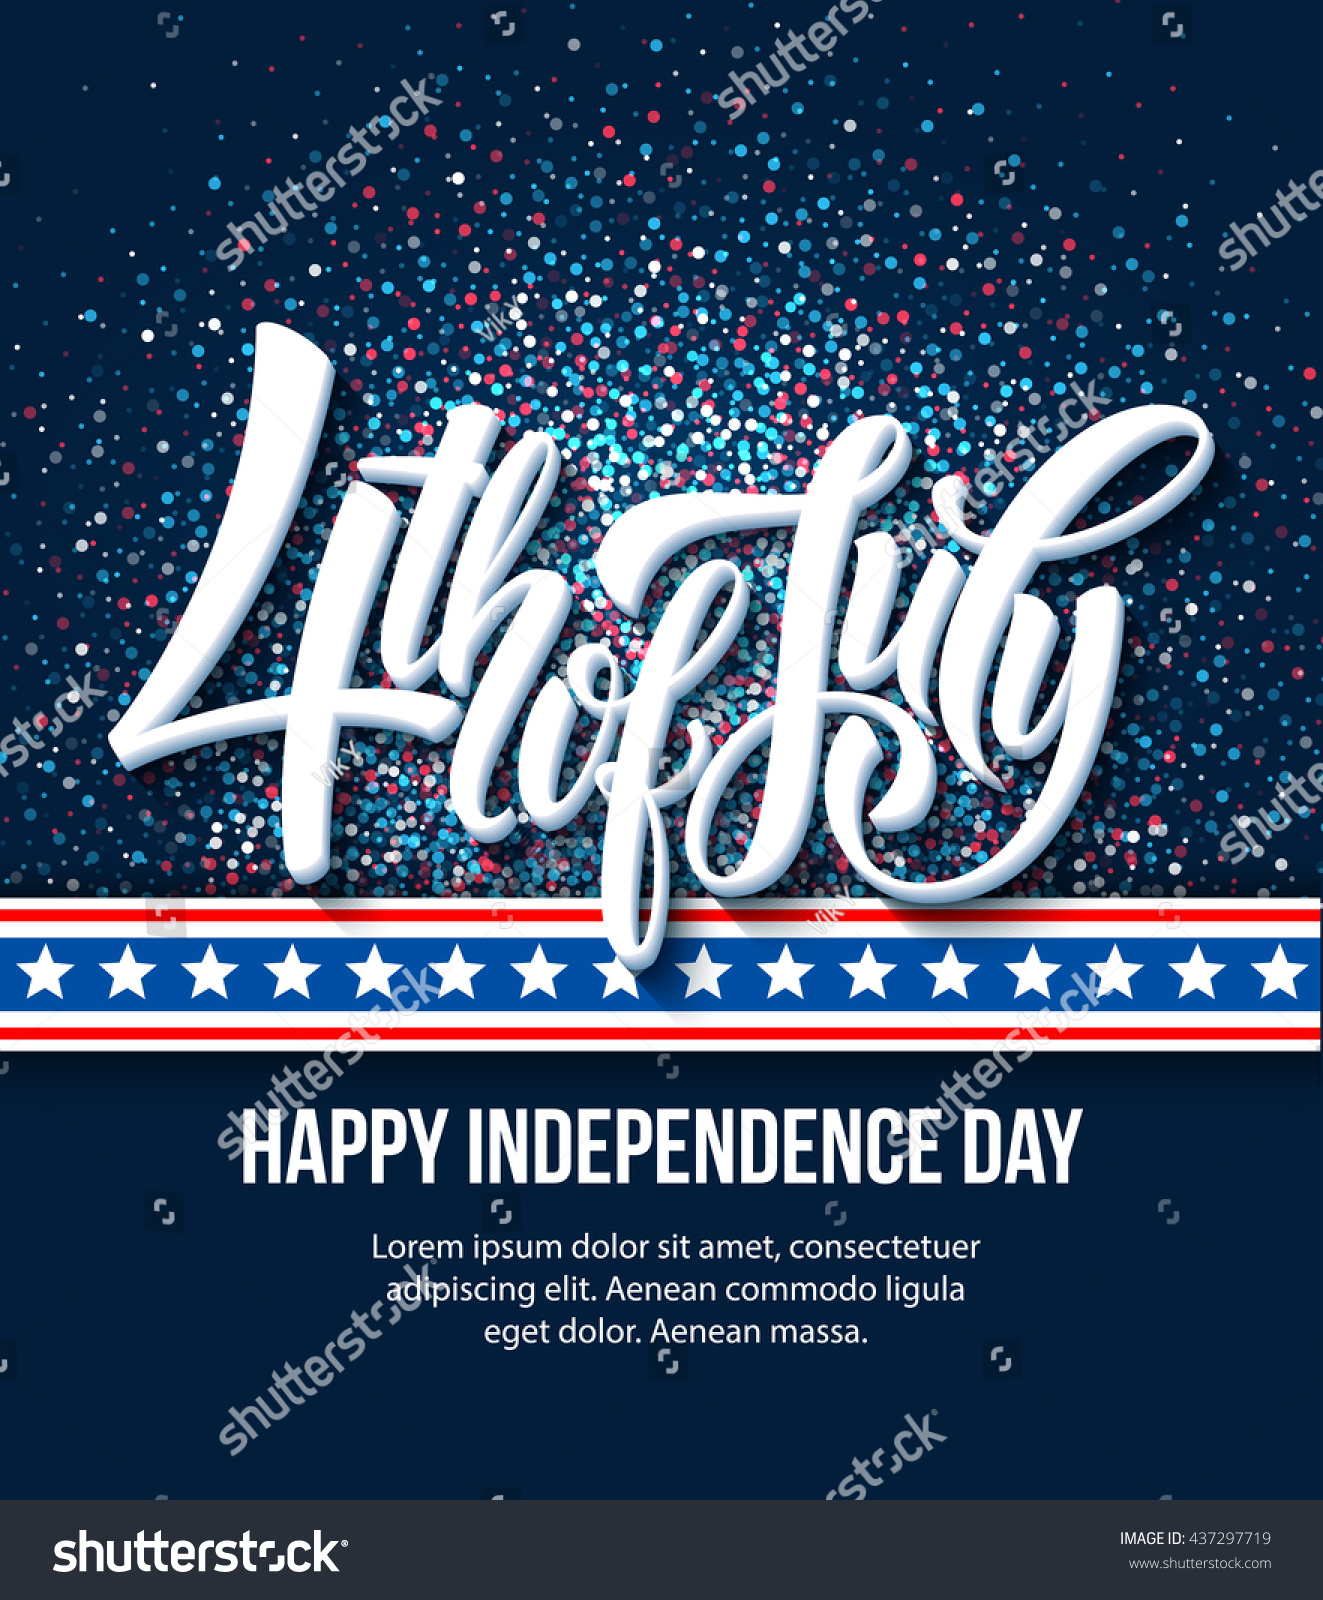 American independence day lettering design template stock vector american independence day lettering design a template background for greeting cards posters leaflets kristyandbryce Images